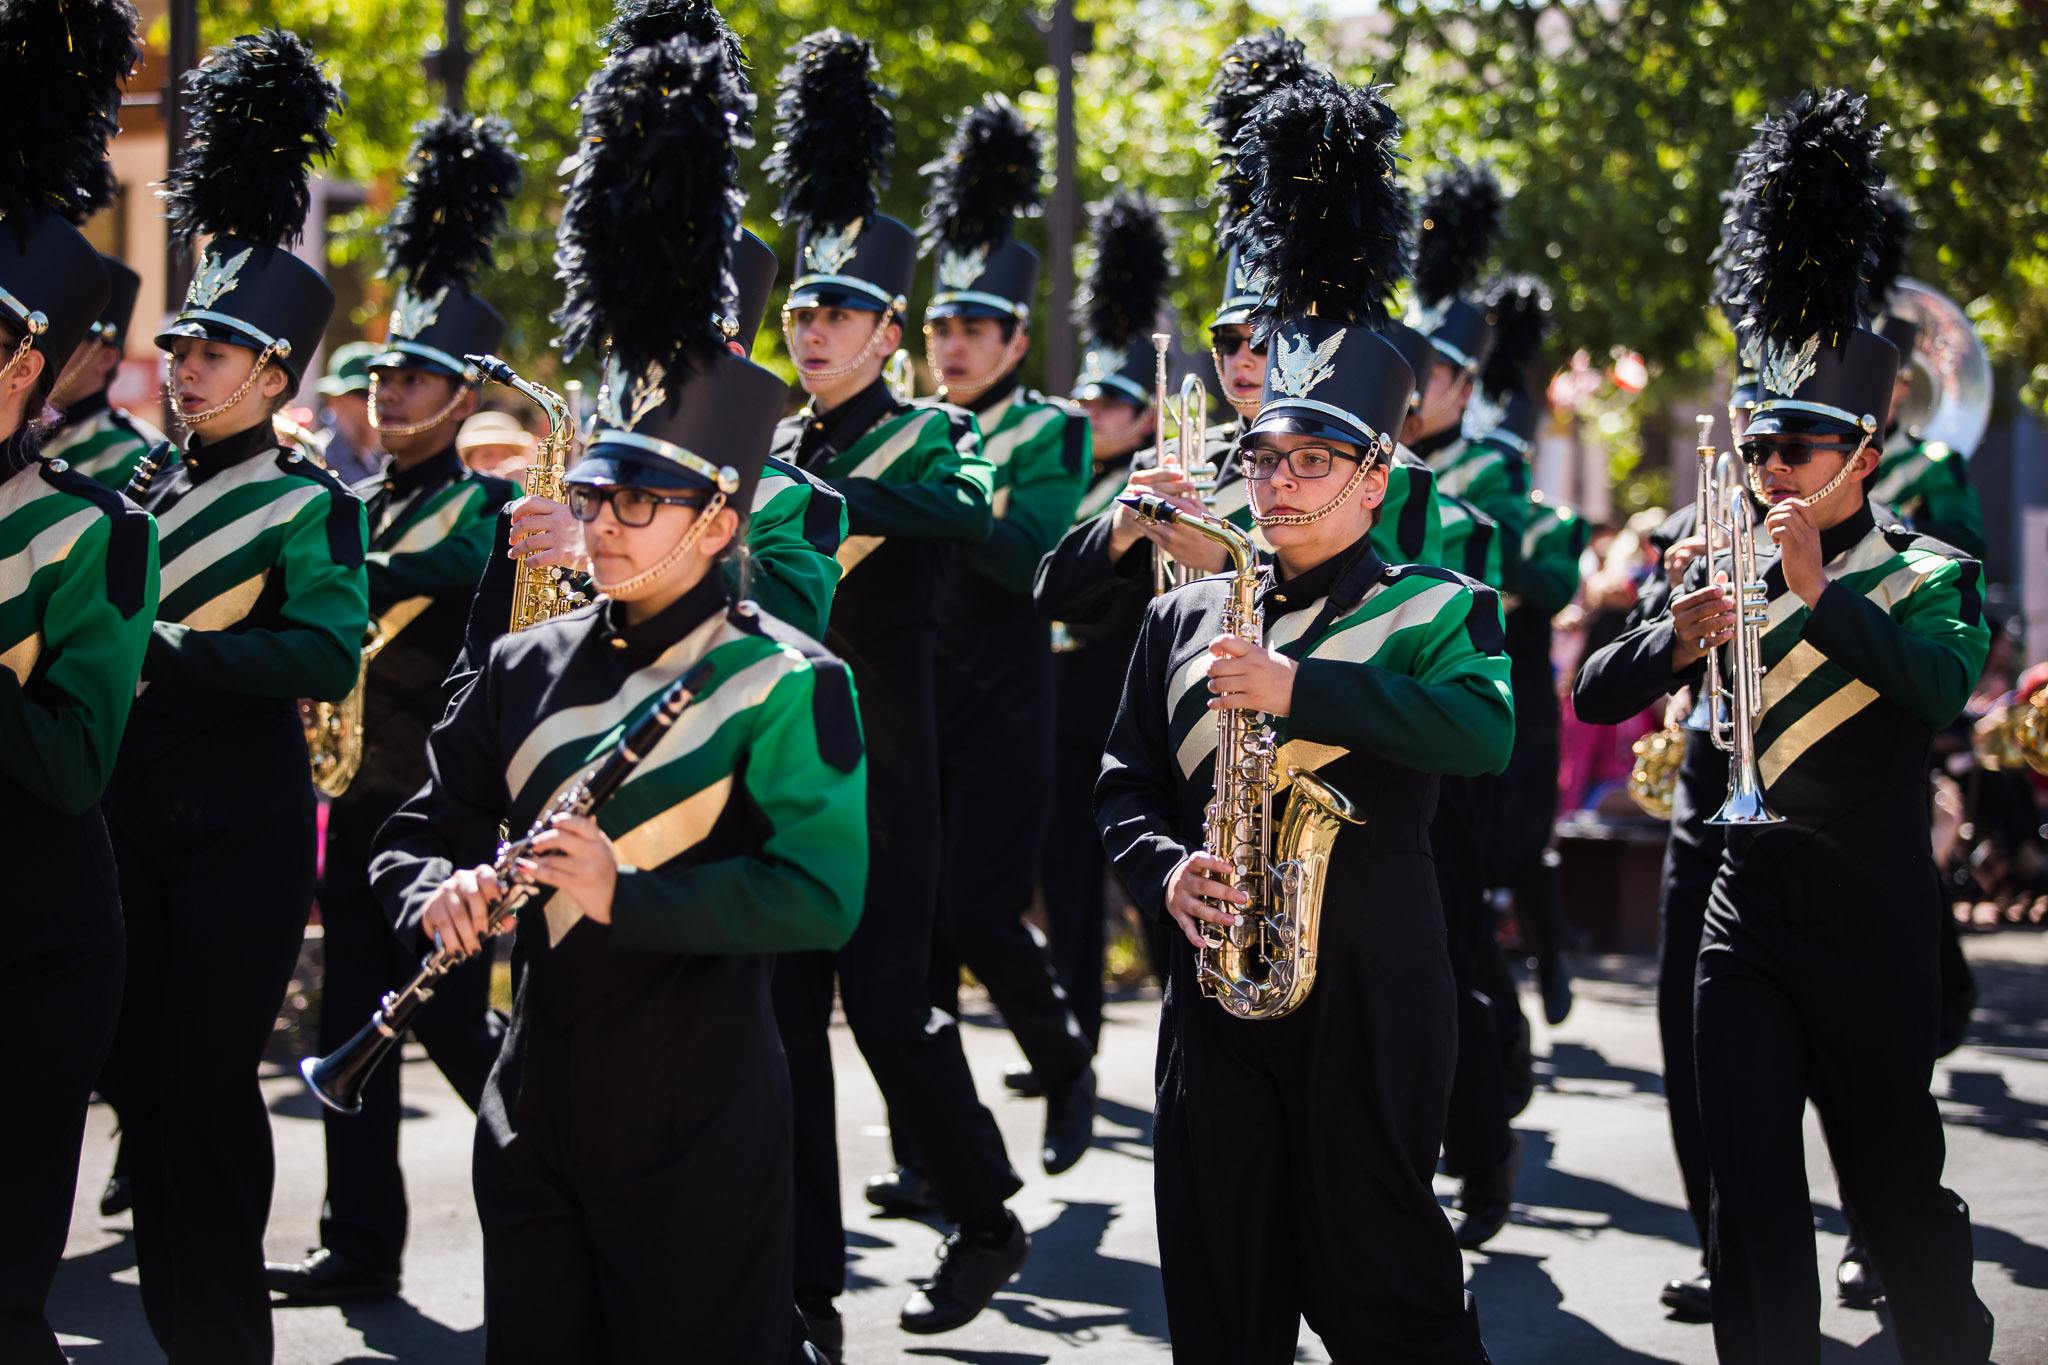 Archer_Inspired_Photography_Morgan_Hill_California_4th_of_july_parade-56.jpg